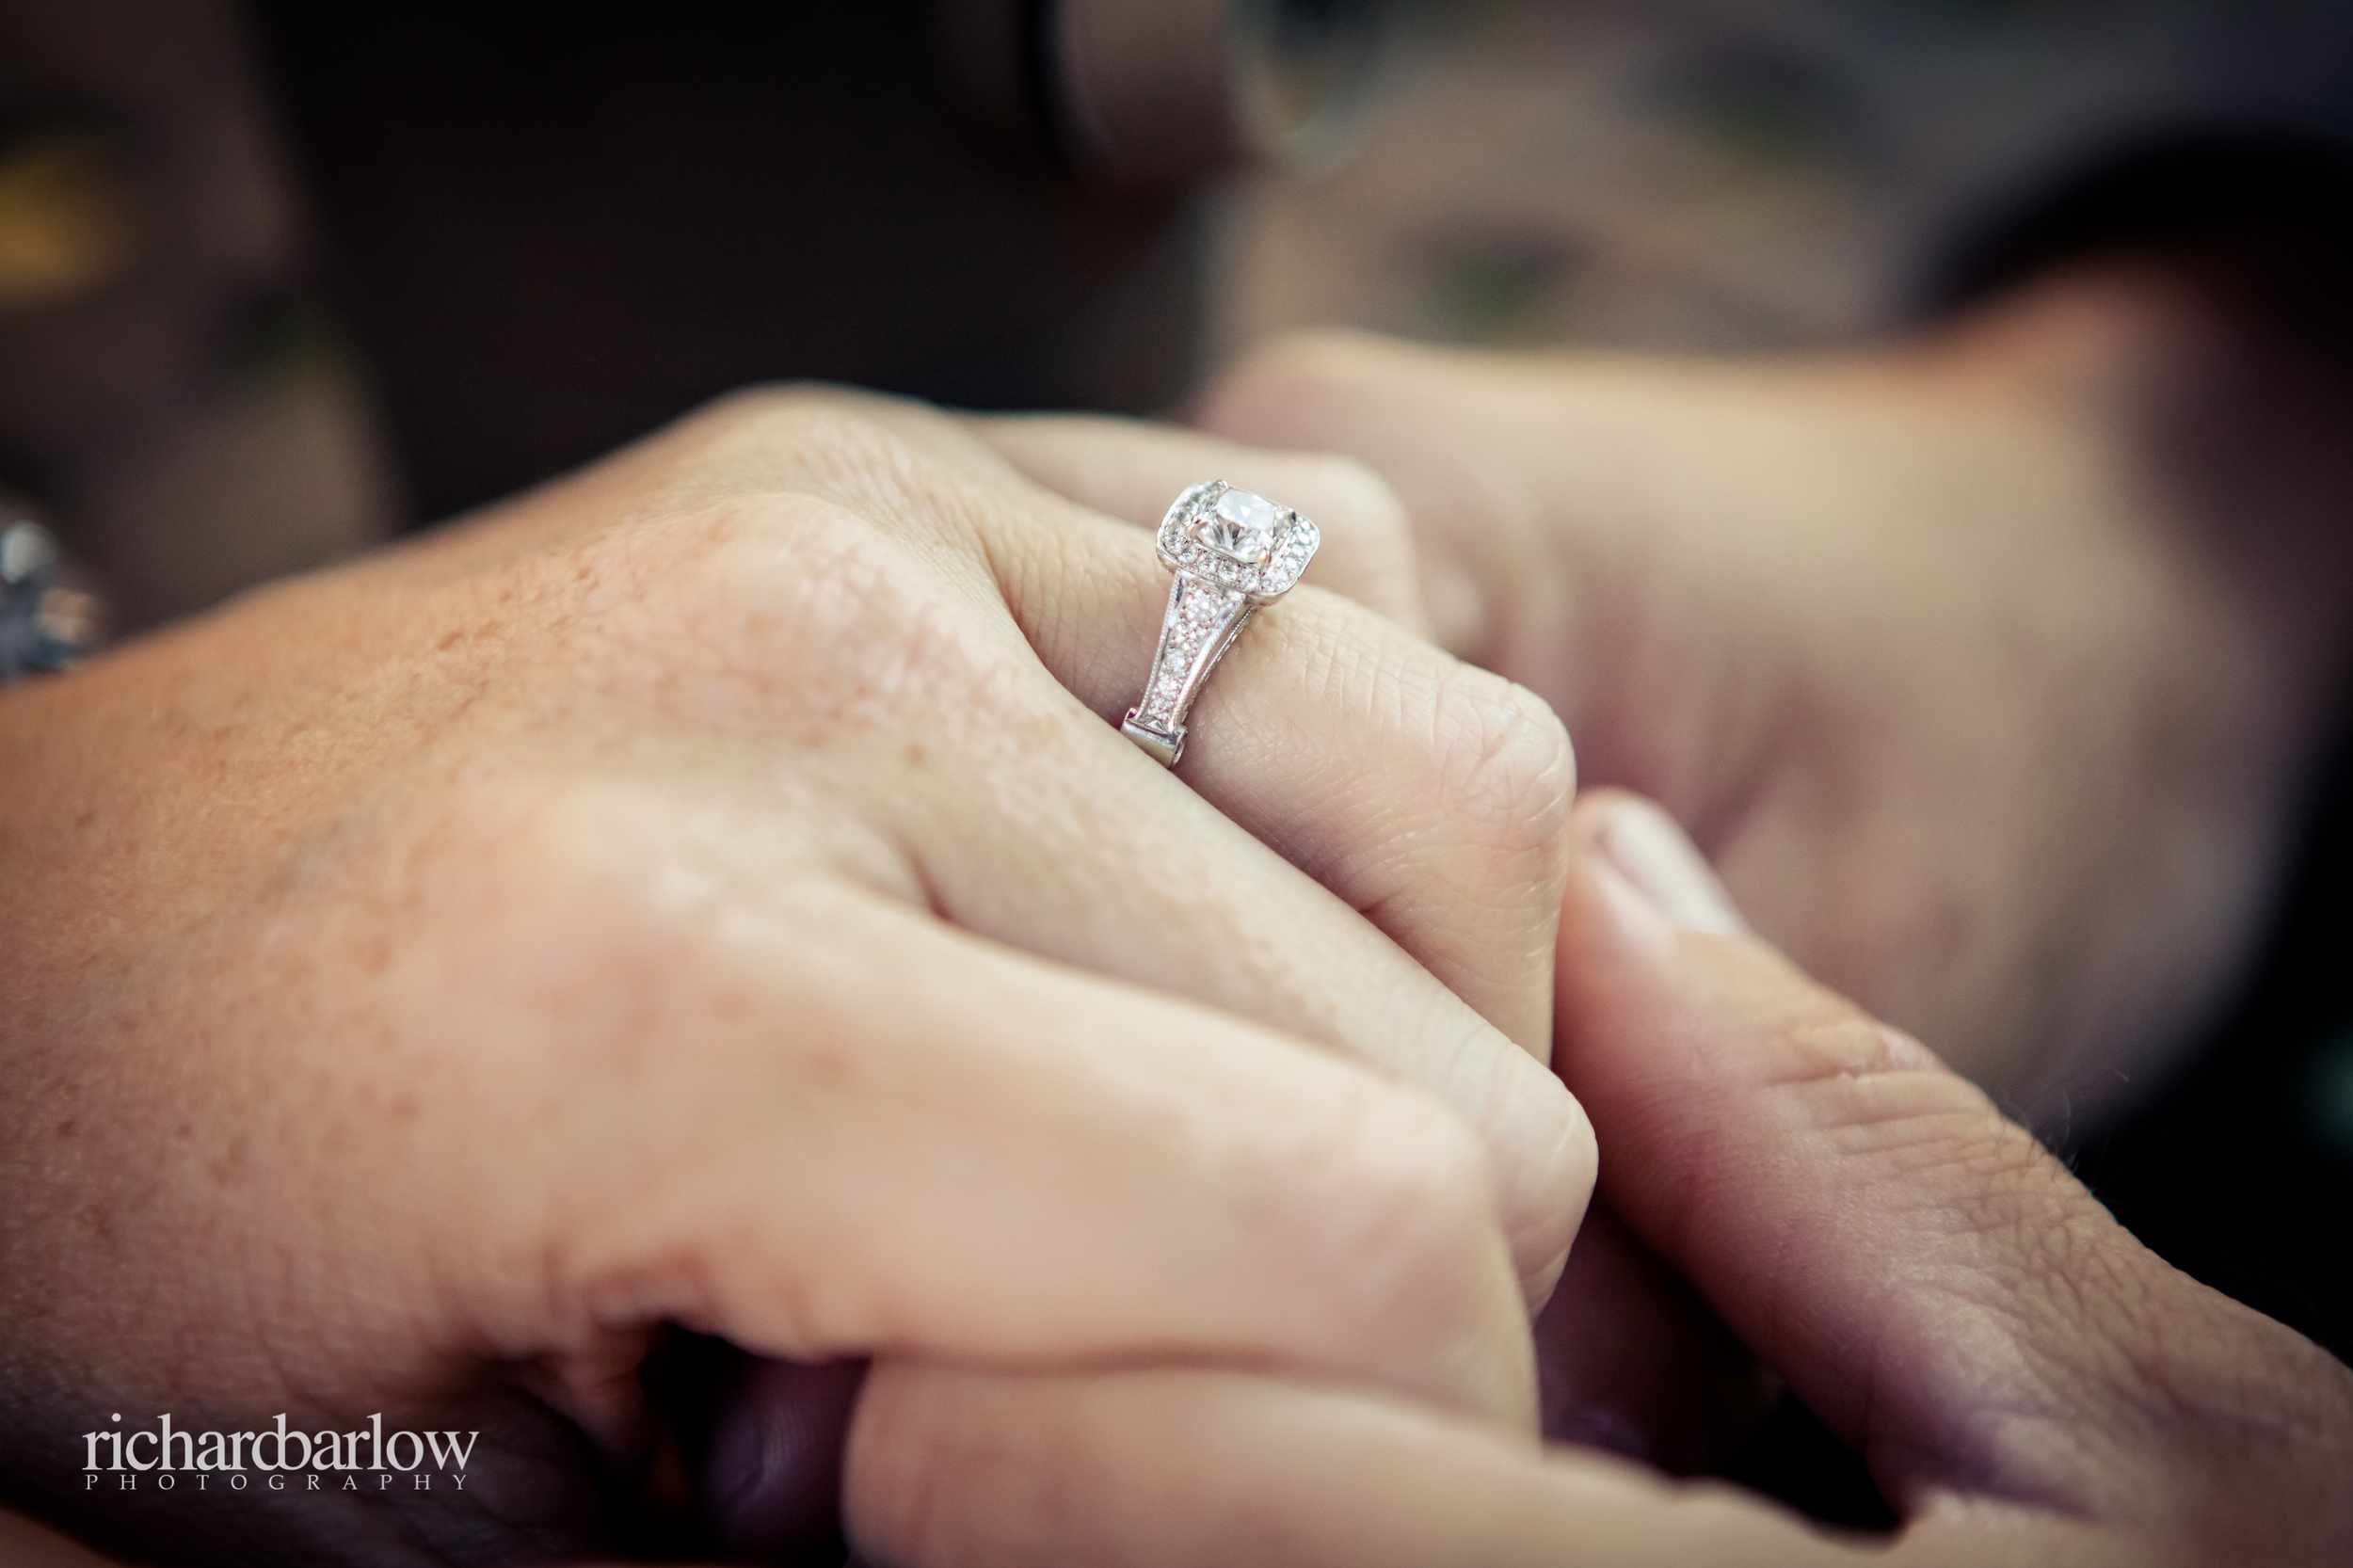 richard barlow photography - Mike and Renee Engagement Session NC-12.jpg